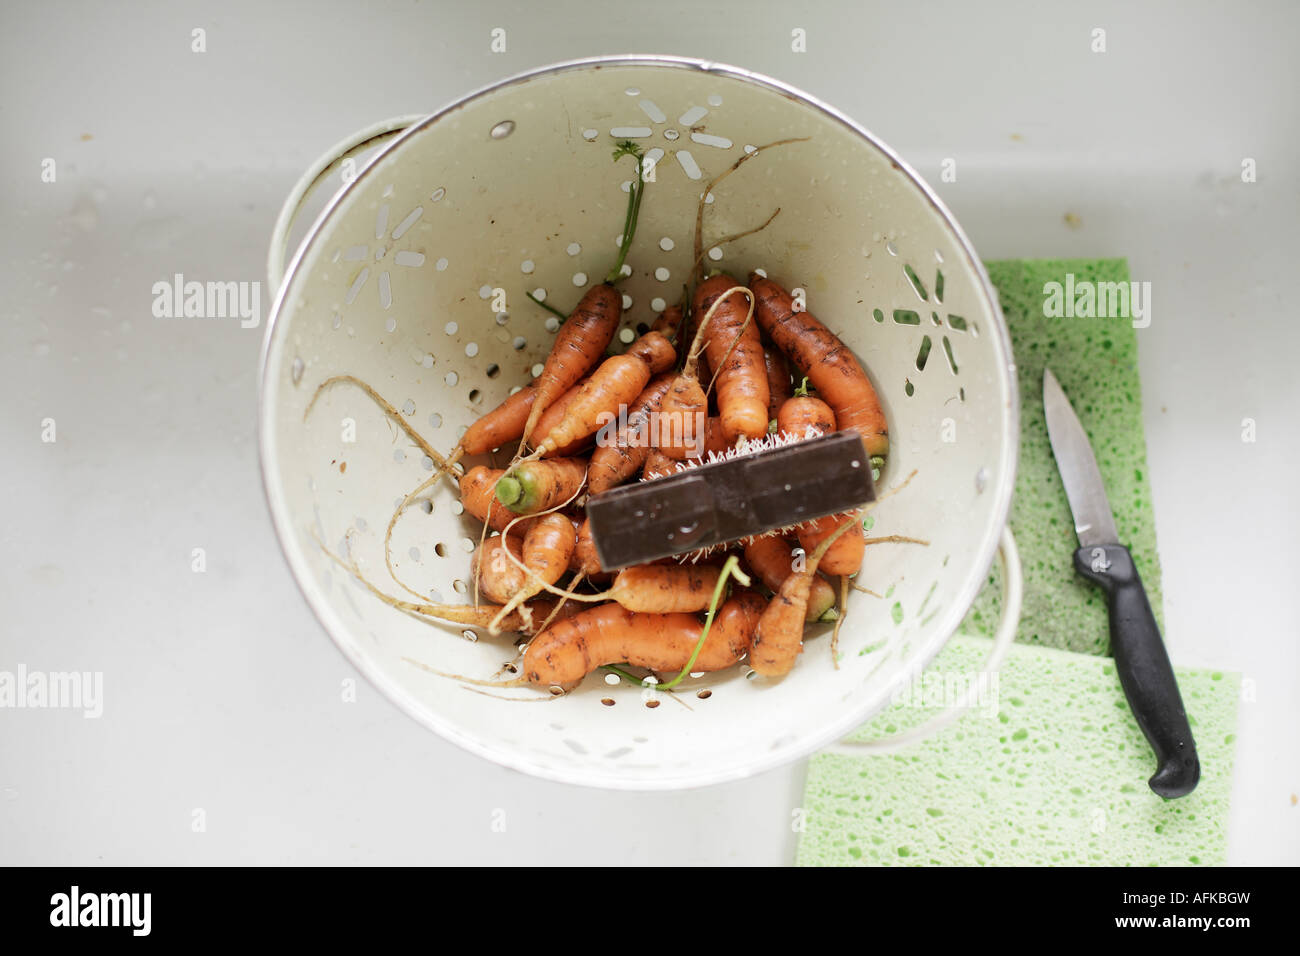 Homegrown organic carrots in a cullendar being scrubbed and prepared Stock Photo